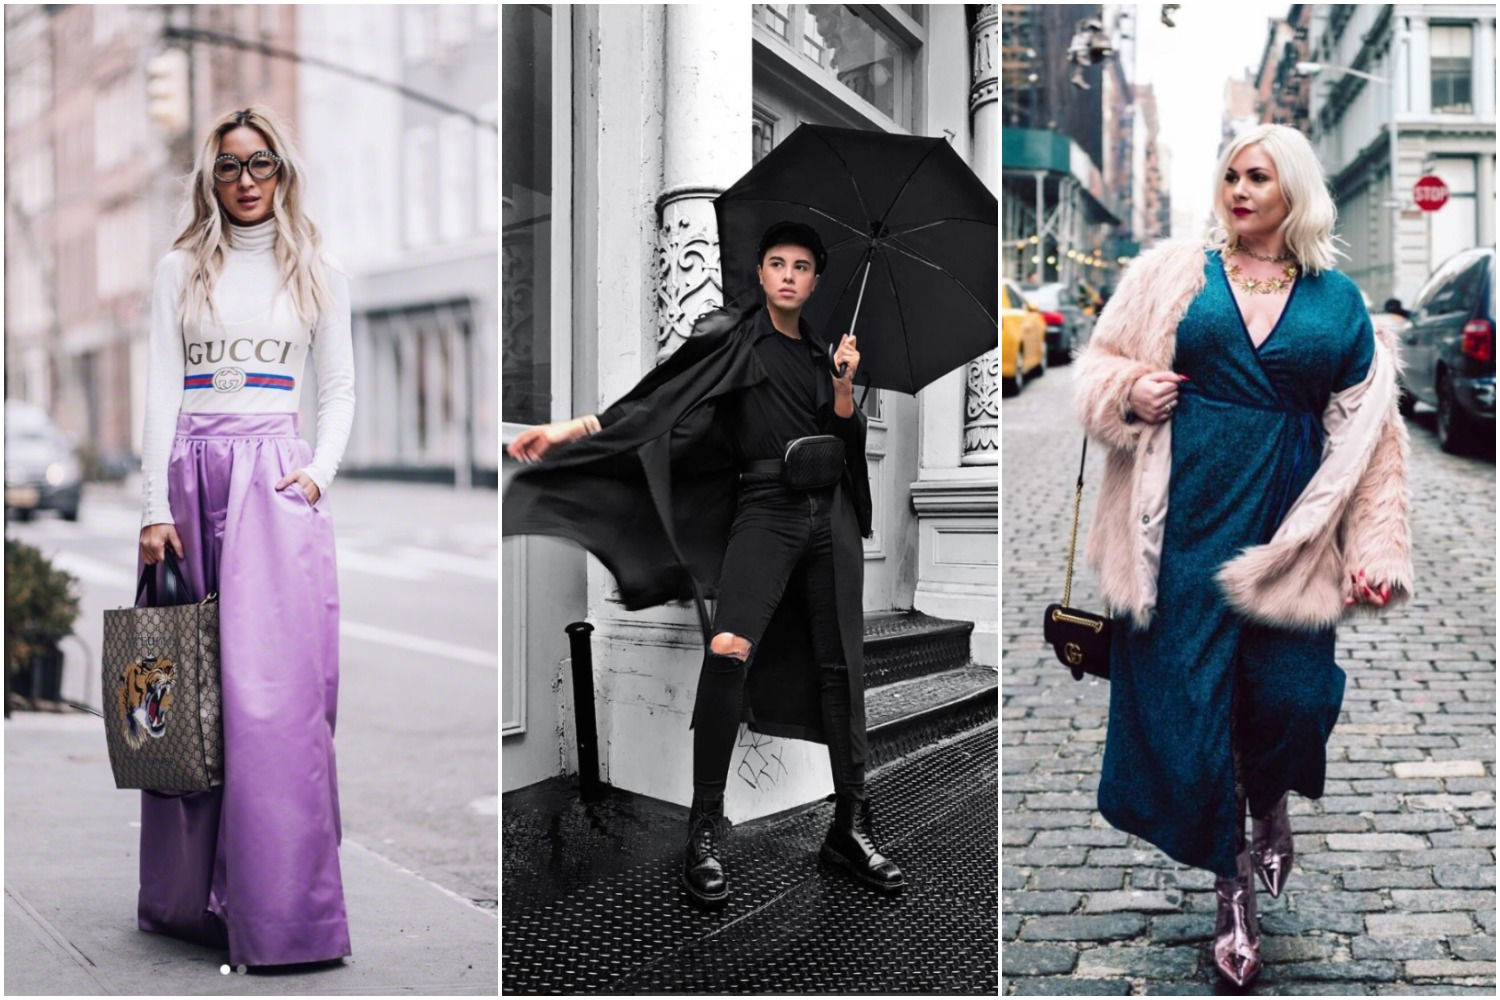 Fashion Week has moved on to Paris, but plenty of our local fashion bloggers flocked north this month for New York Fashion Week. All of the bloggers have a unique aesthetic, but no one can say D.C. isn't a fashionable town. Here are some of our favorite looks bloggers brought to the streets of NYFW.{&amp;nbsp;}<p></p>